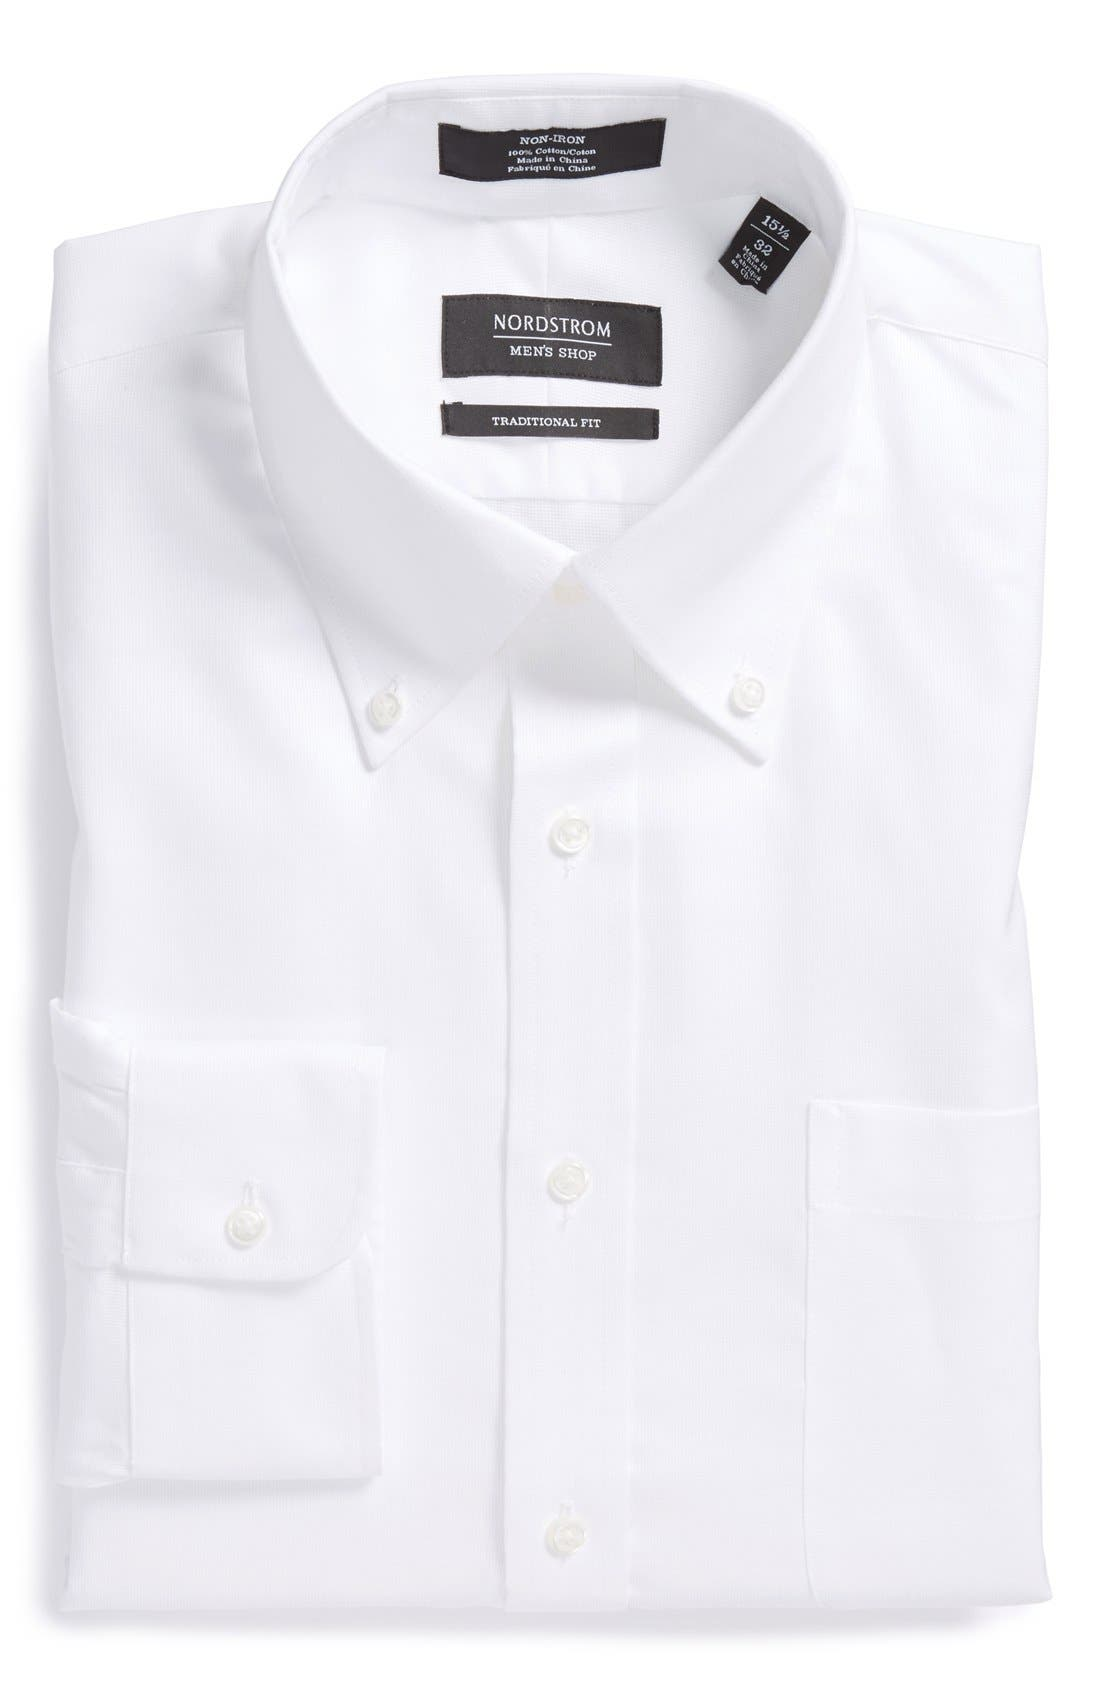 NORDSTROM MEN'S SHOP Nordstrom Traditional Fit Non-Iron Dress Shirt, Main, color, 100